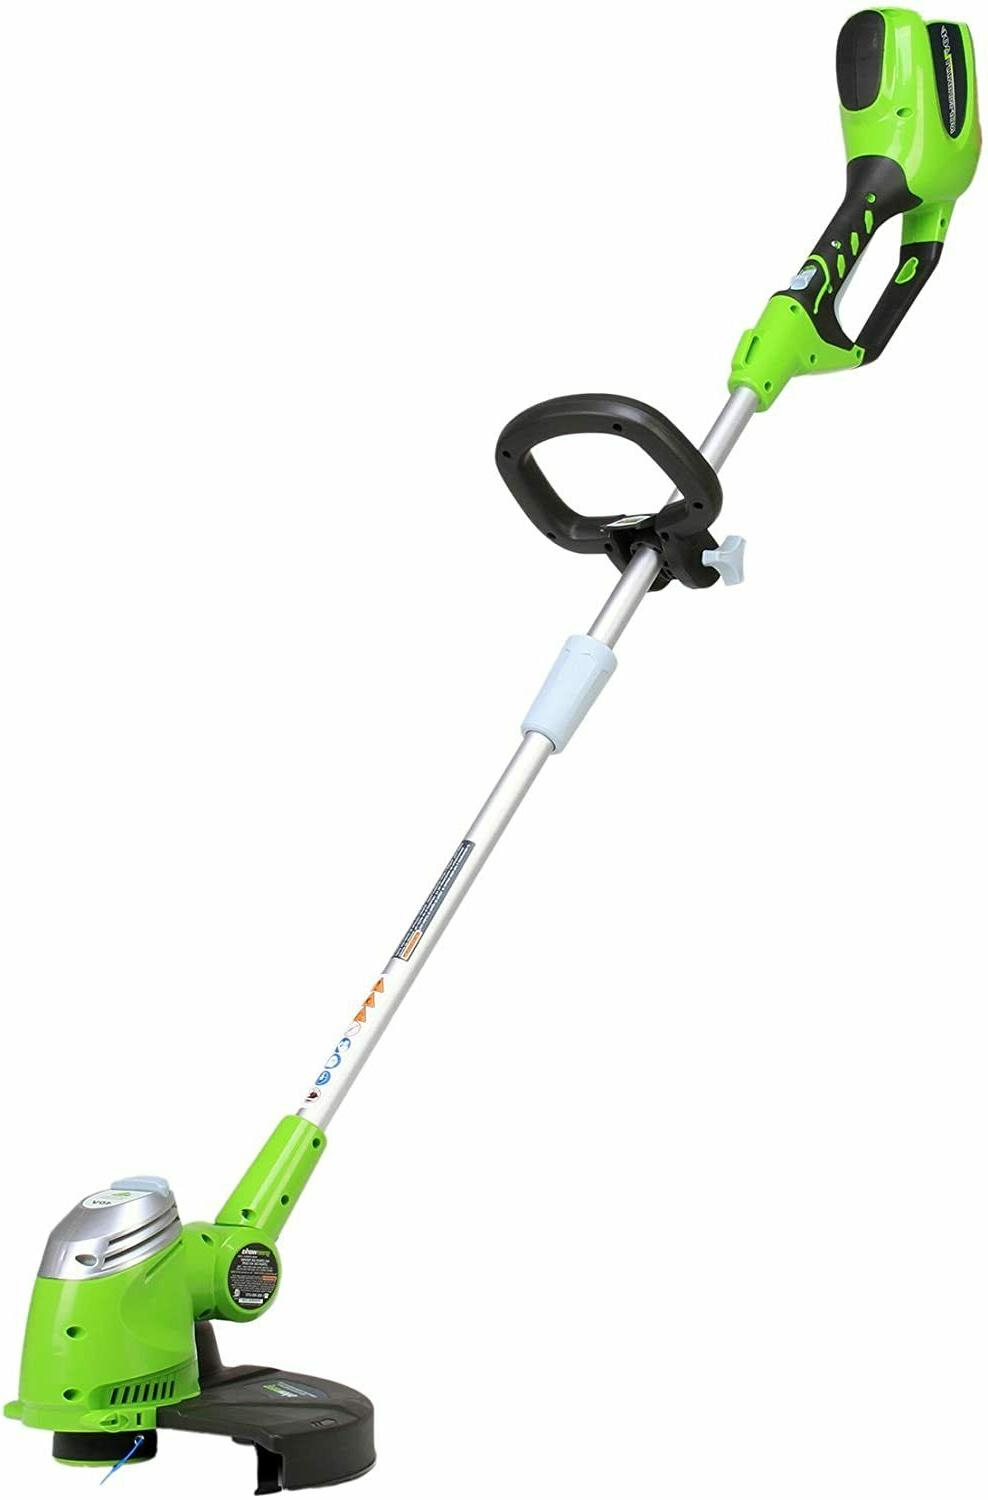 Cordless String Trimmer Eater 40V Tool Not